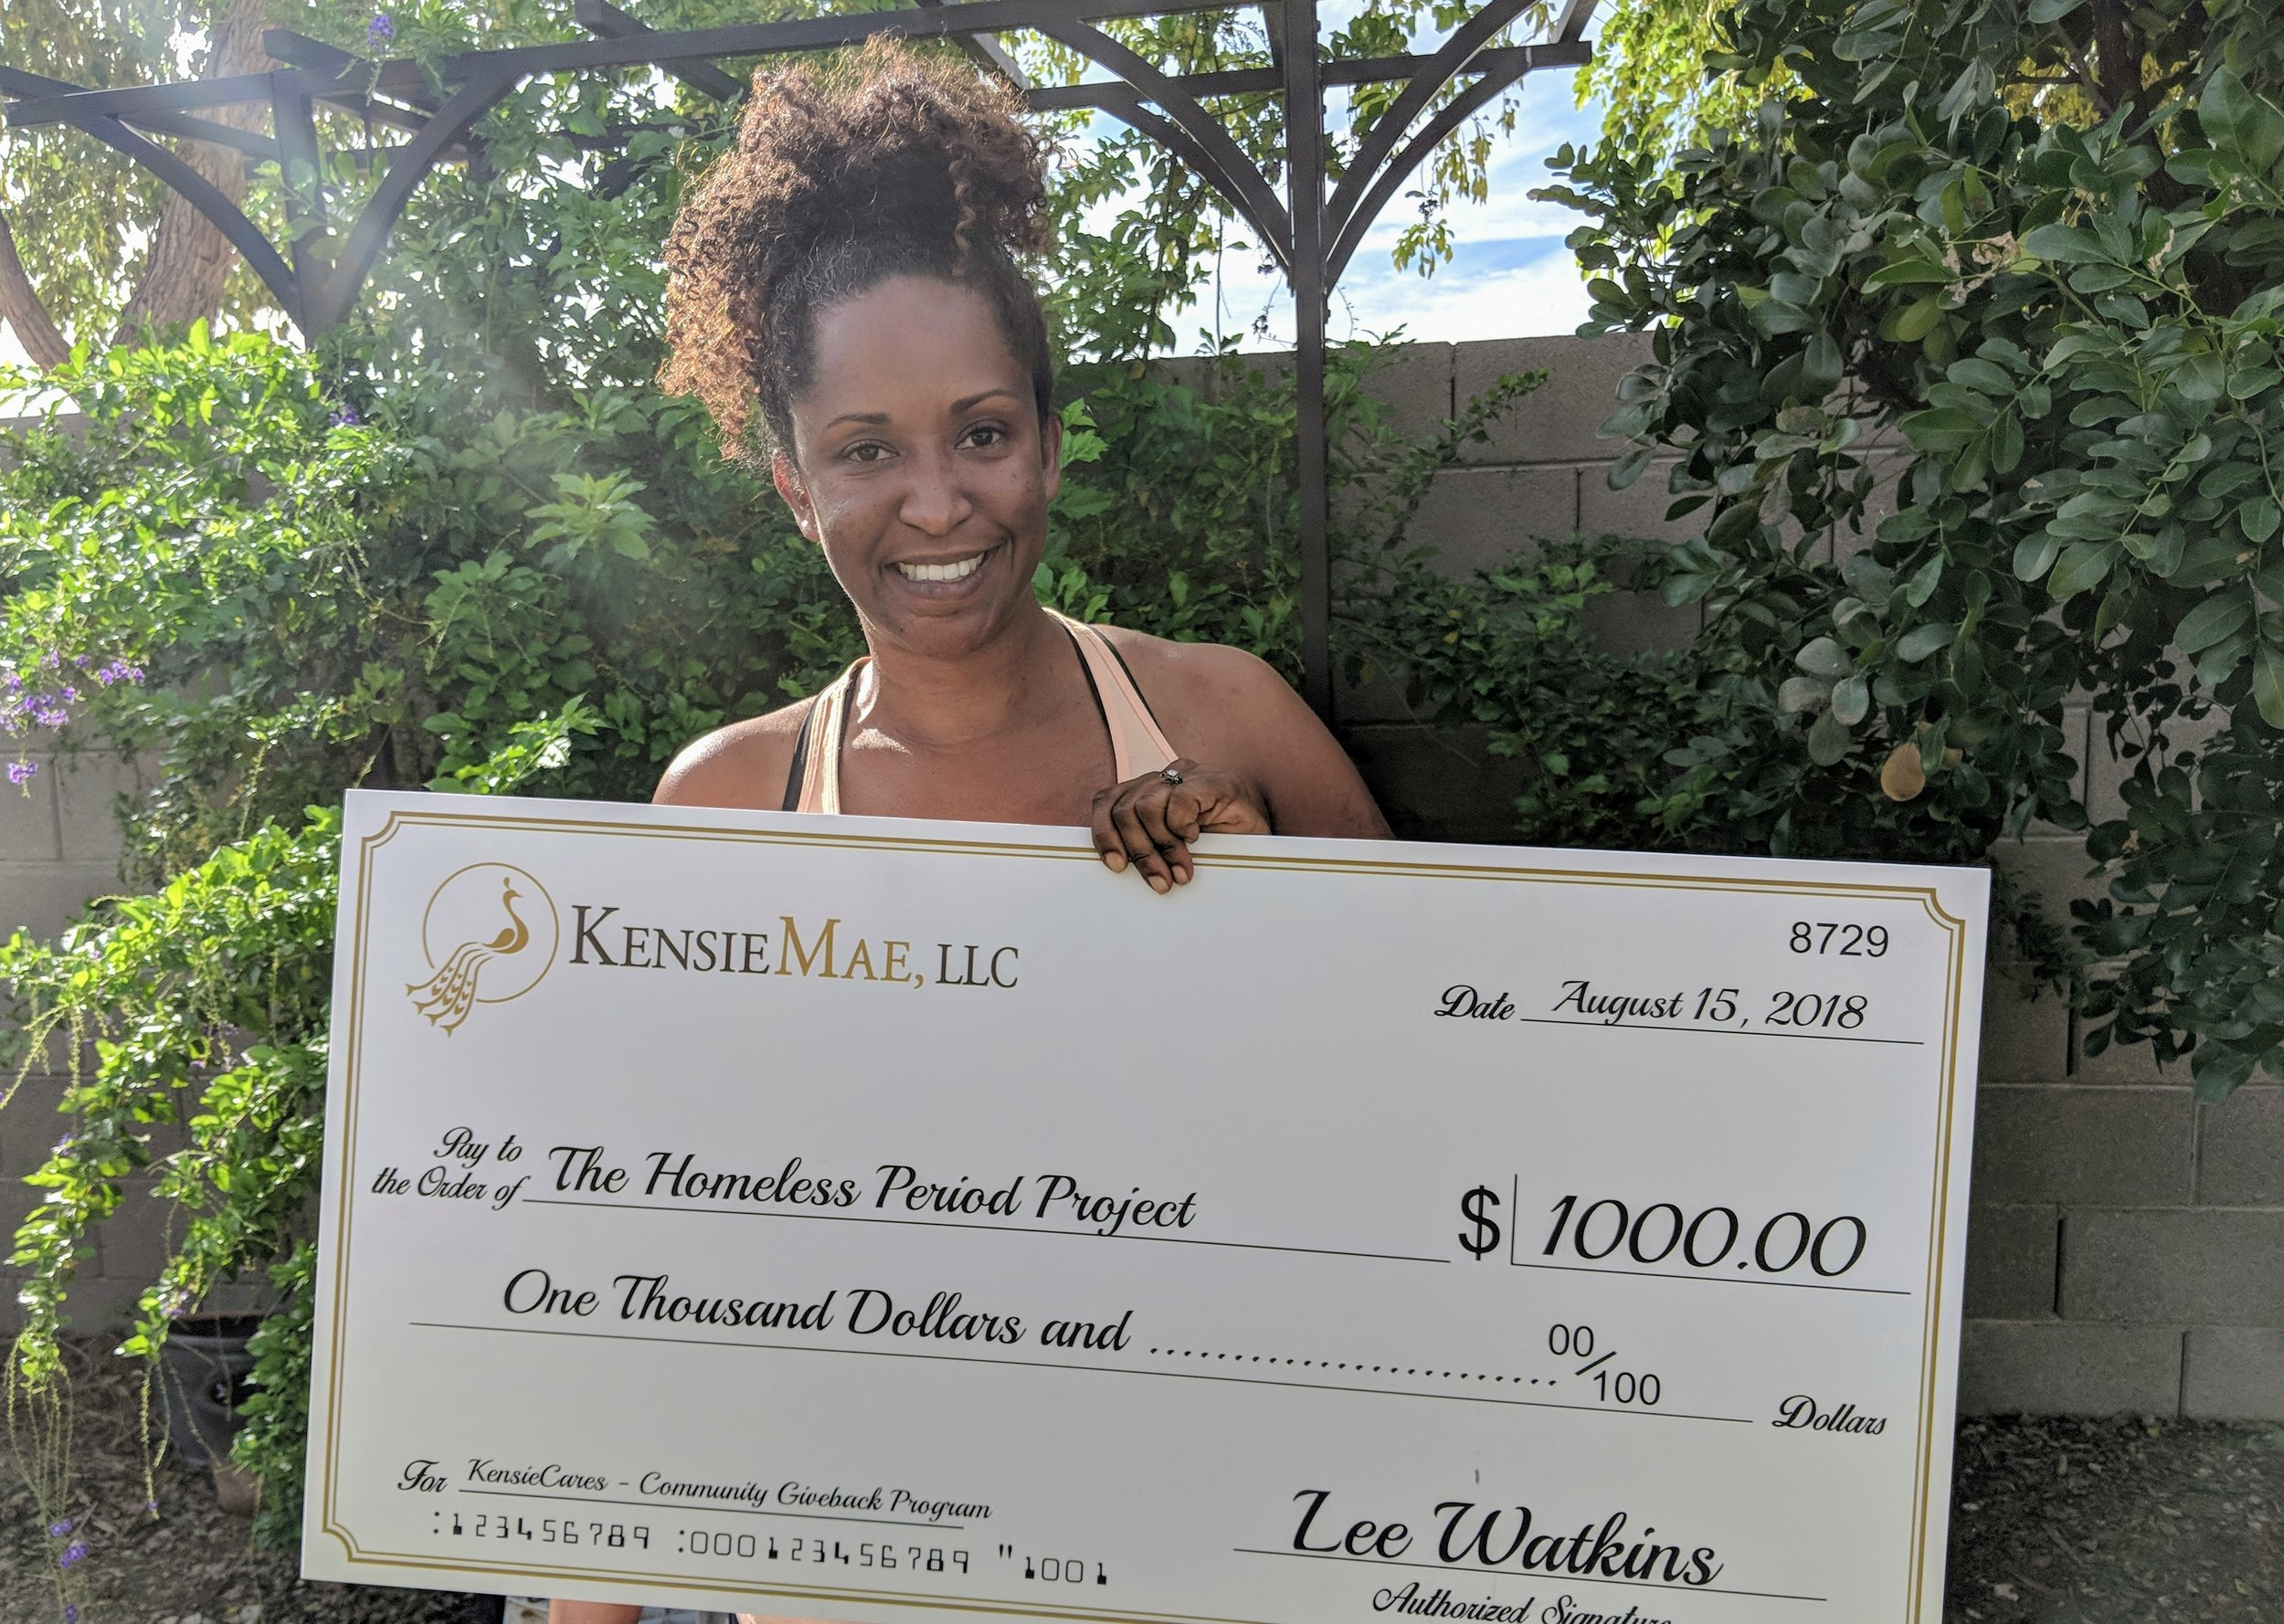 Ona Watkins, HPP - Phoenix Chapter Branch Manager, Holds the donation being Made on behalf of KensieMae employee Lee Watkins for The Homeless Period Project.